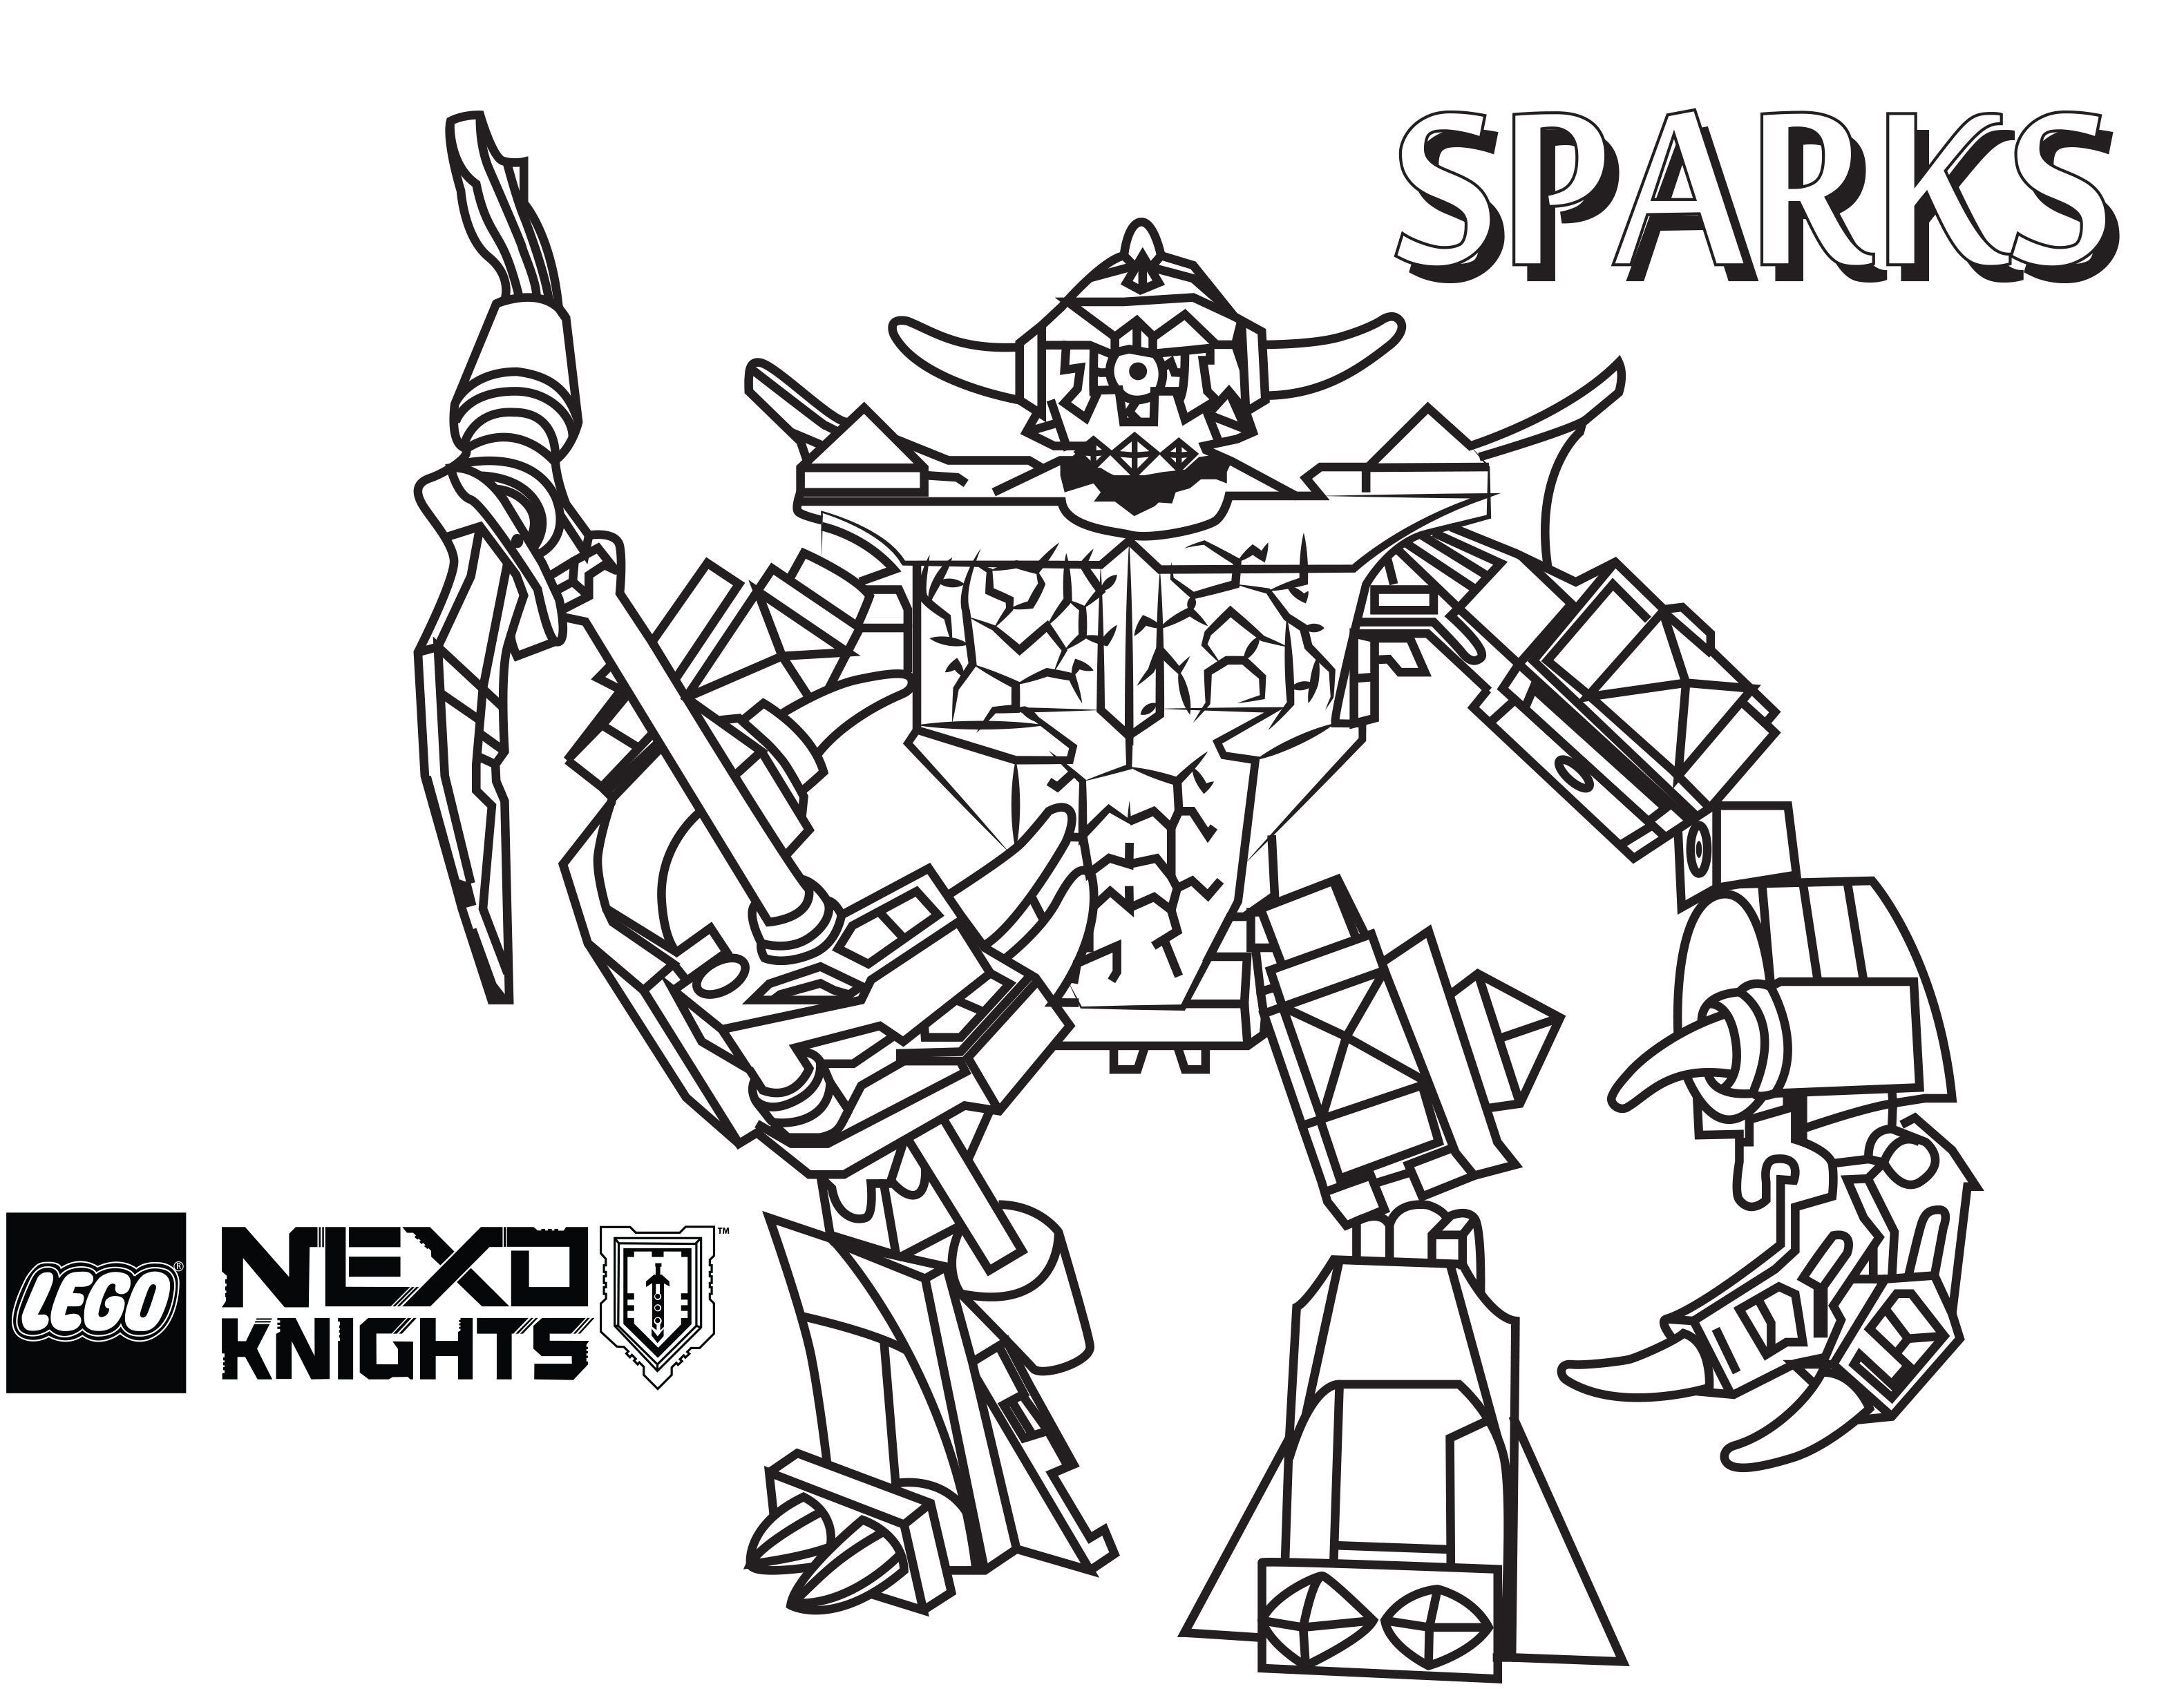 Clay Lego Nexo Knights Coloring Pages In 2021 Lego Coloring Pages Coloring Pages Lego Knights